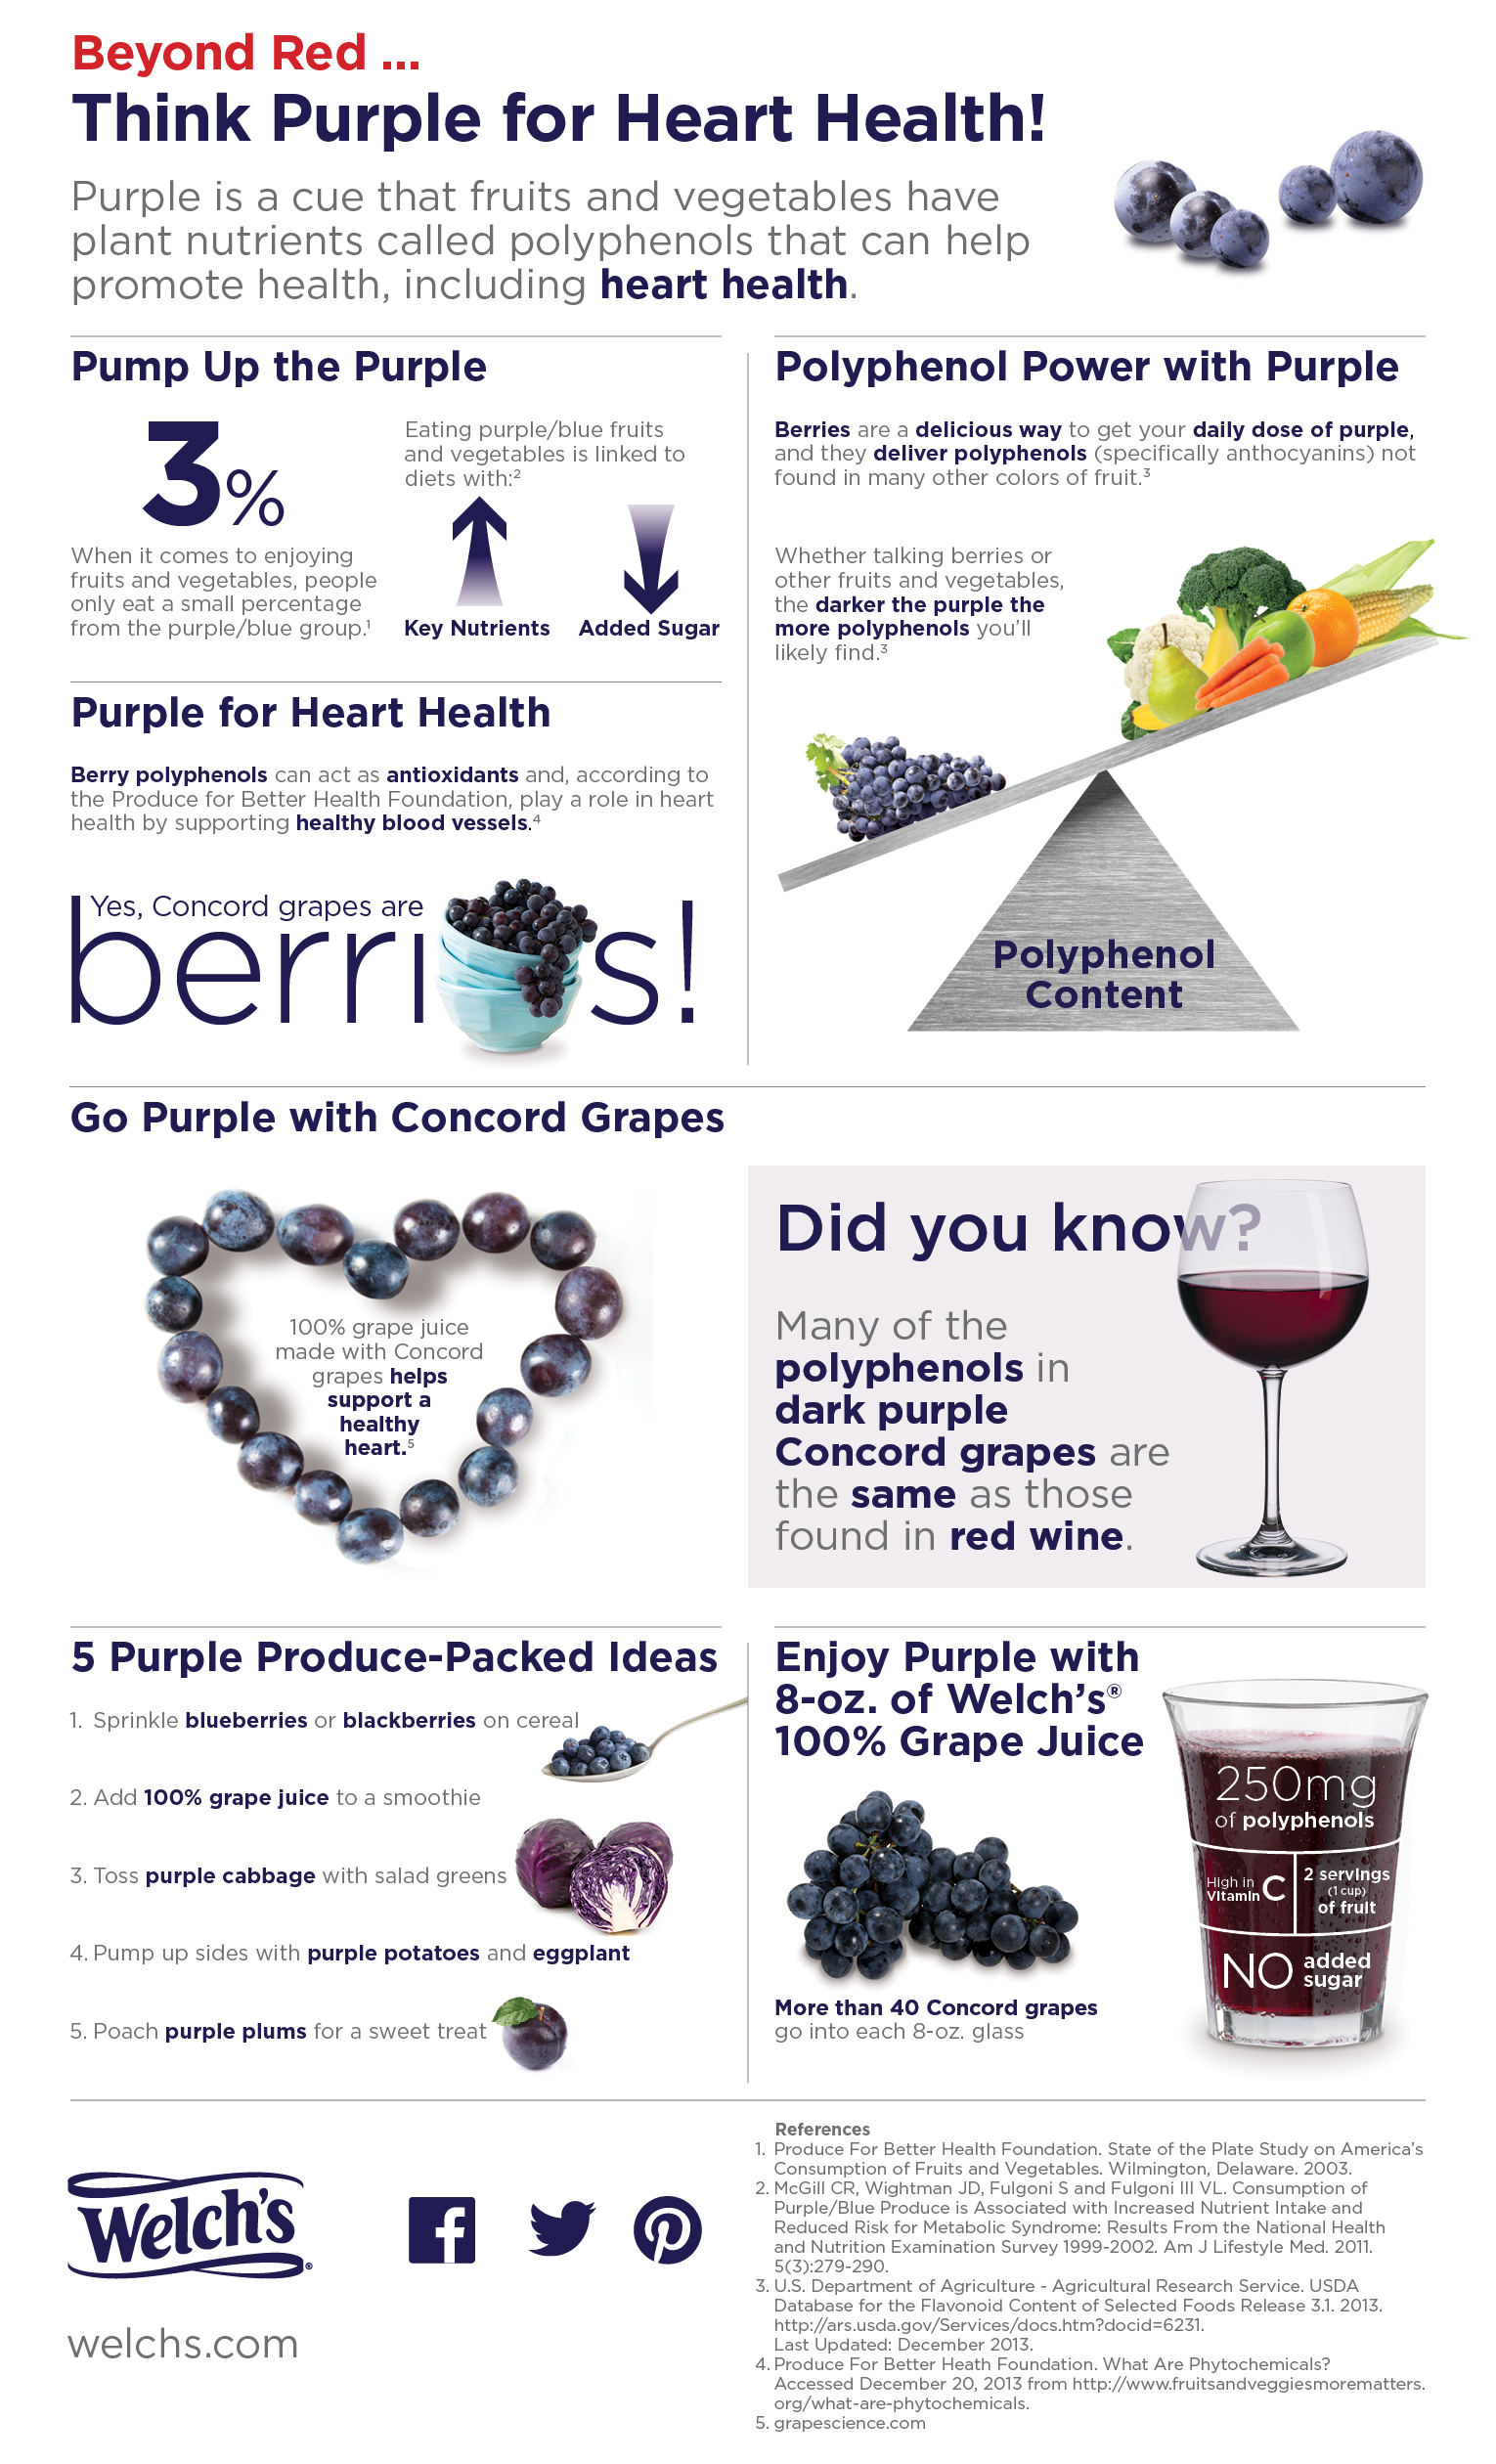 Welch's - Think Purple for Heart Health infographic via Lizshealthytable.com